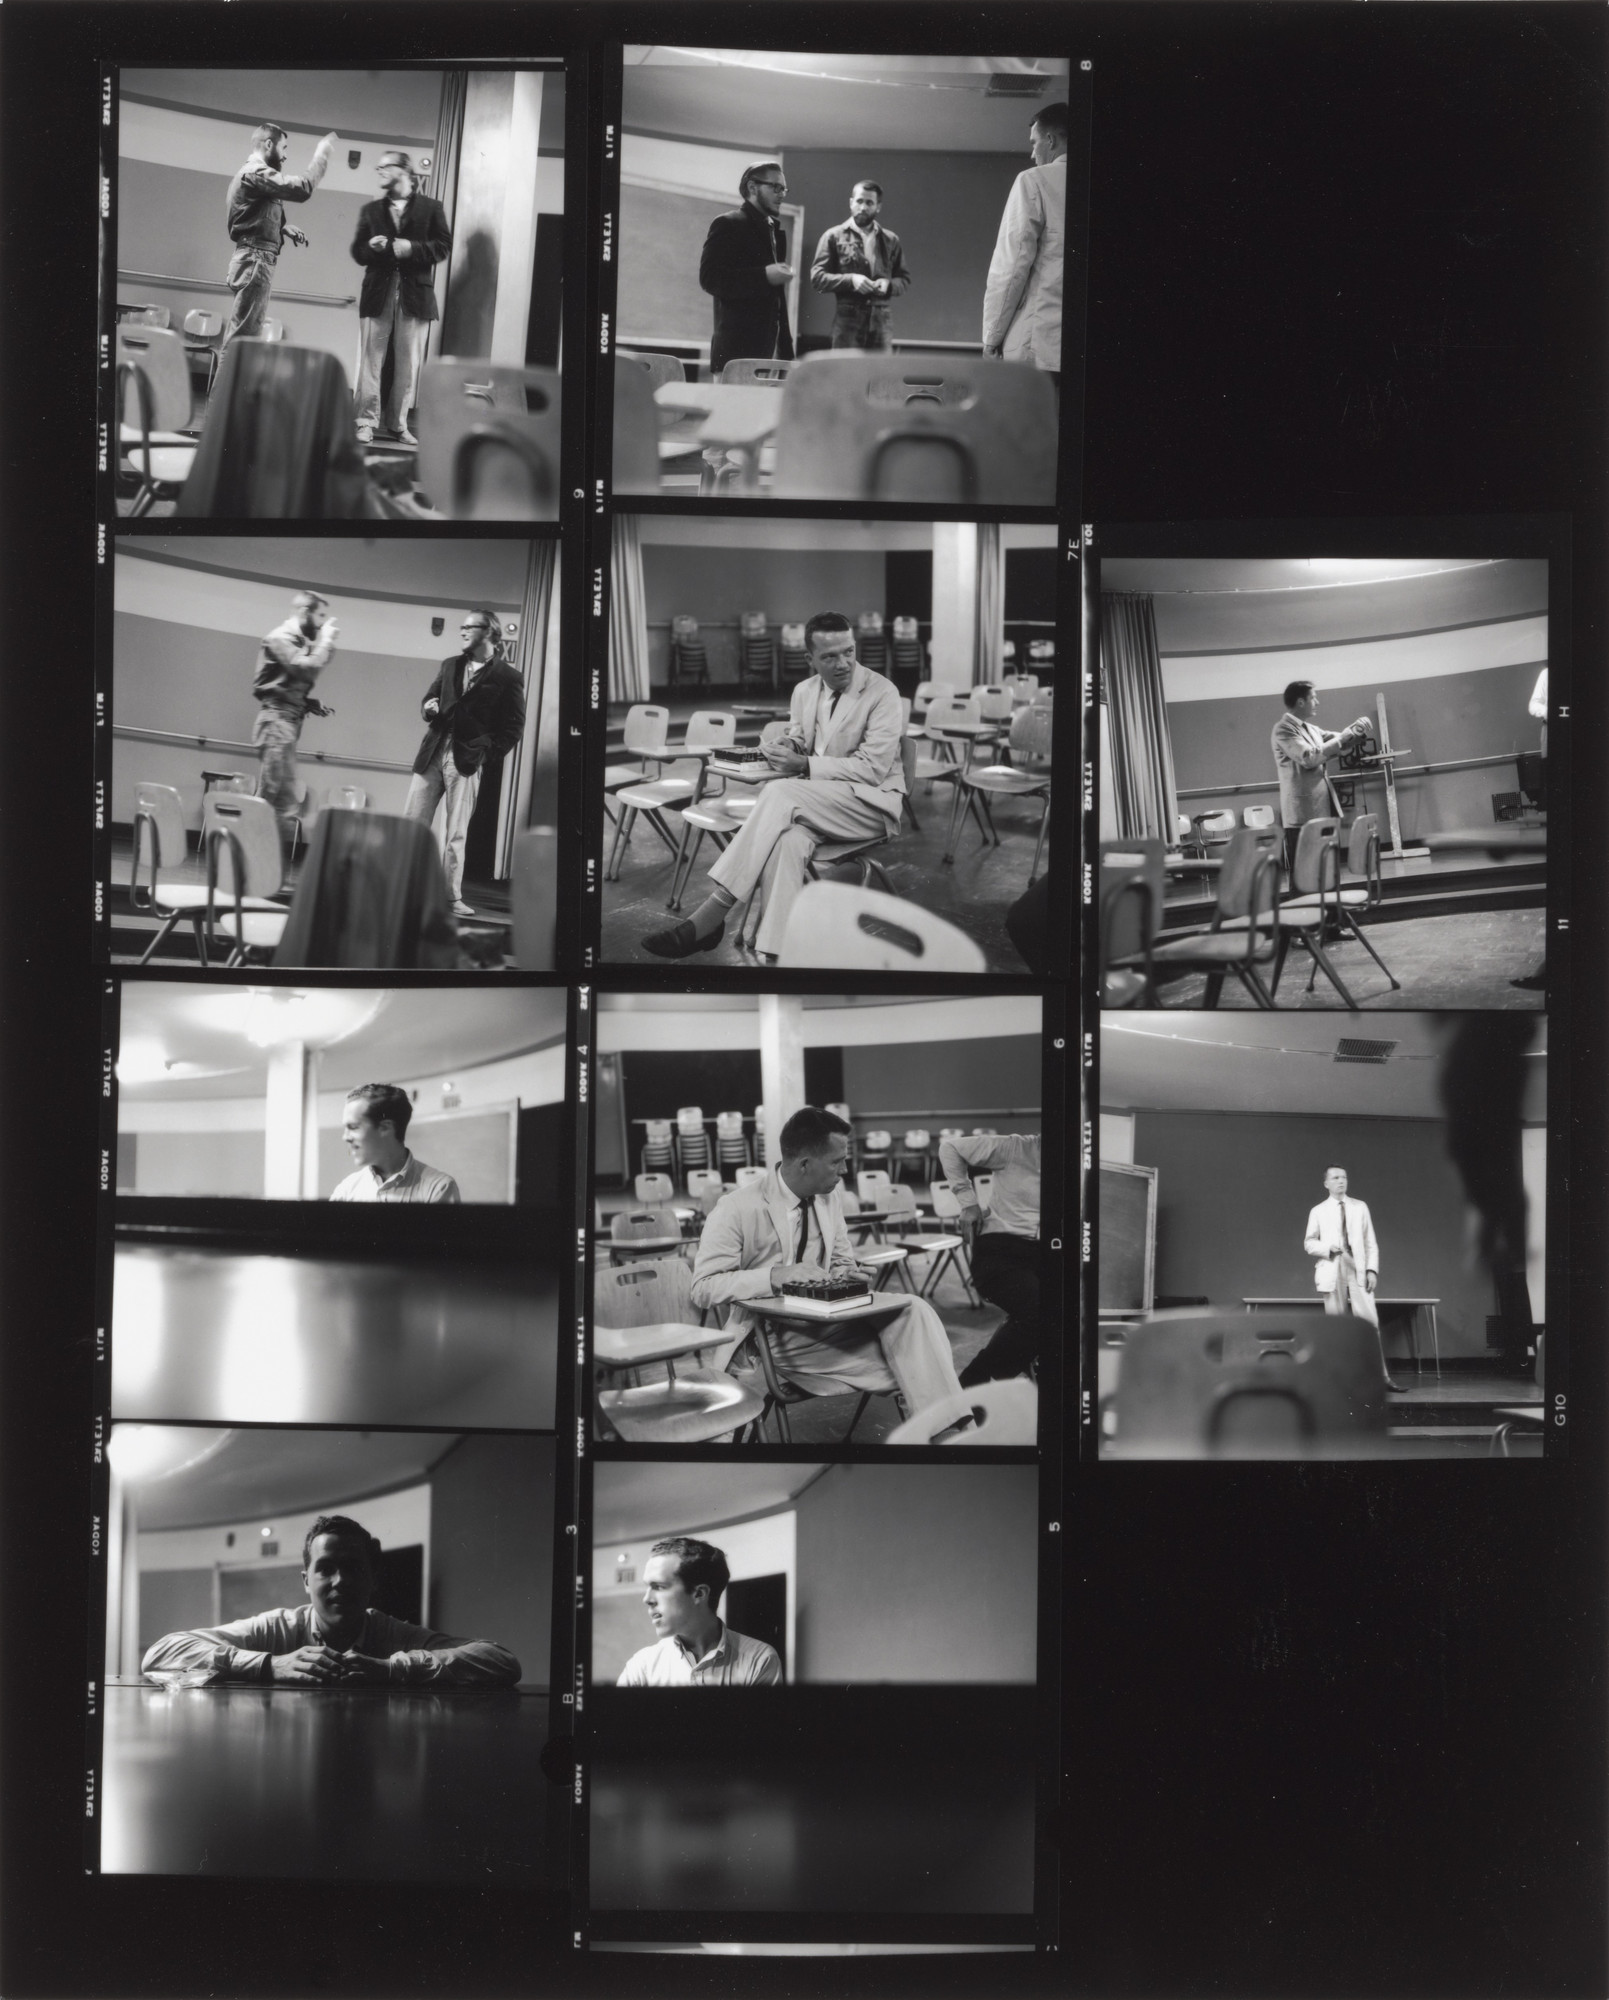 Fred W. McDarrah. Contact sheet of John Cage's class at the New School for Social Research, New York. 1959